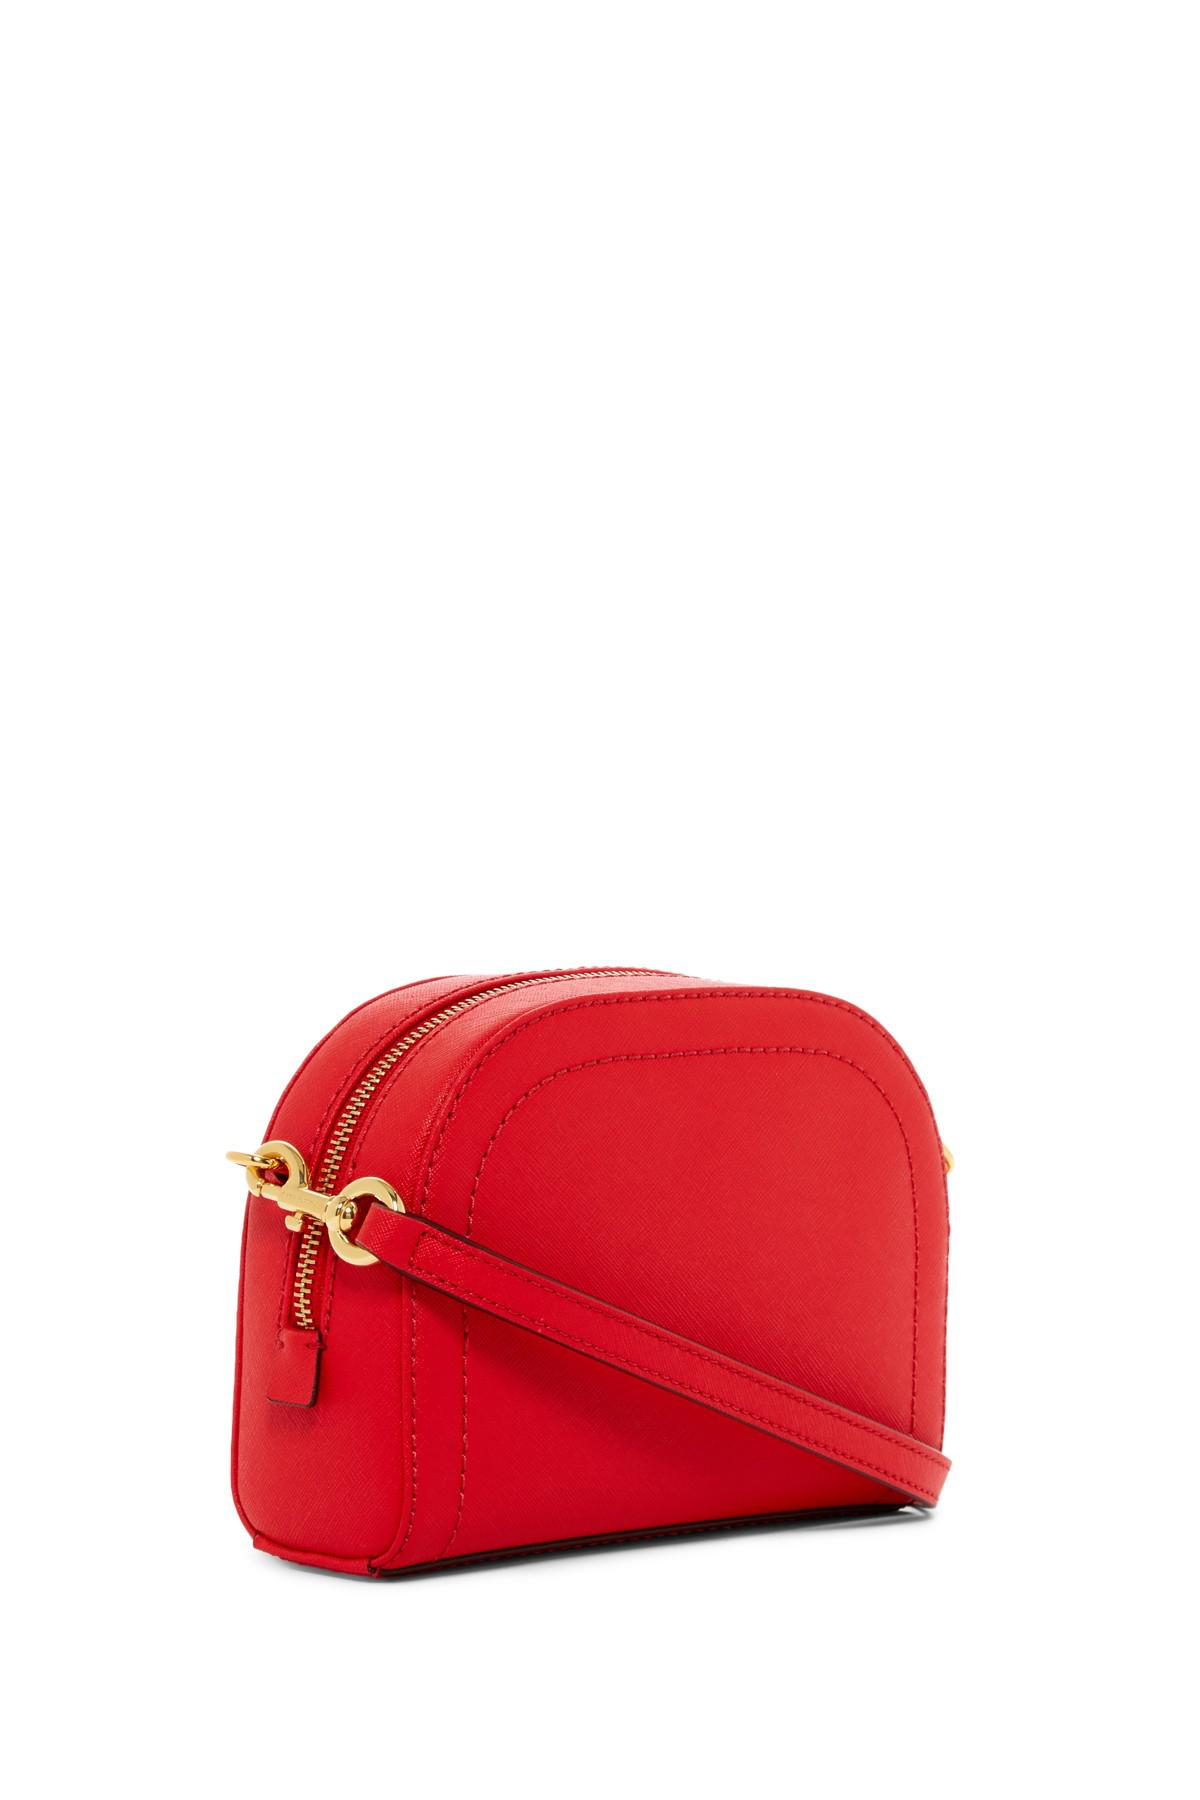 Lyst Marc Jacobs Playback Leather Crossbody Bag In Red